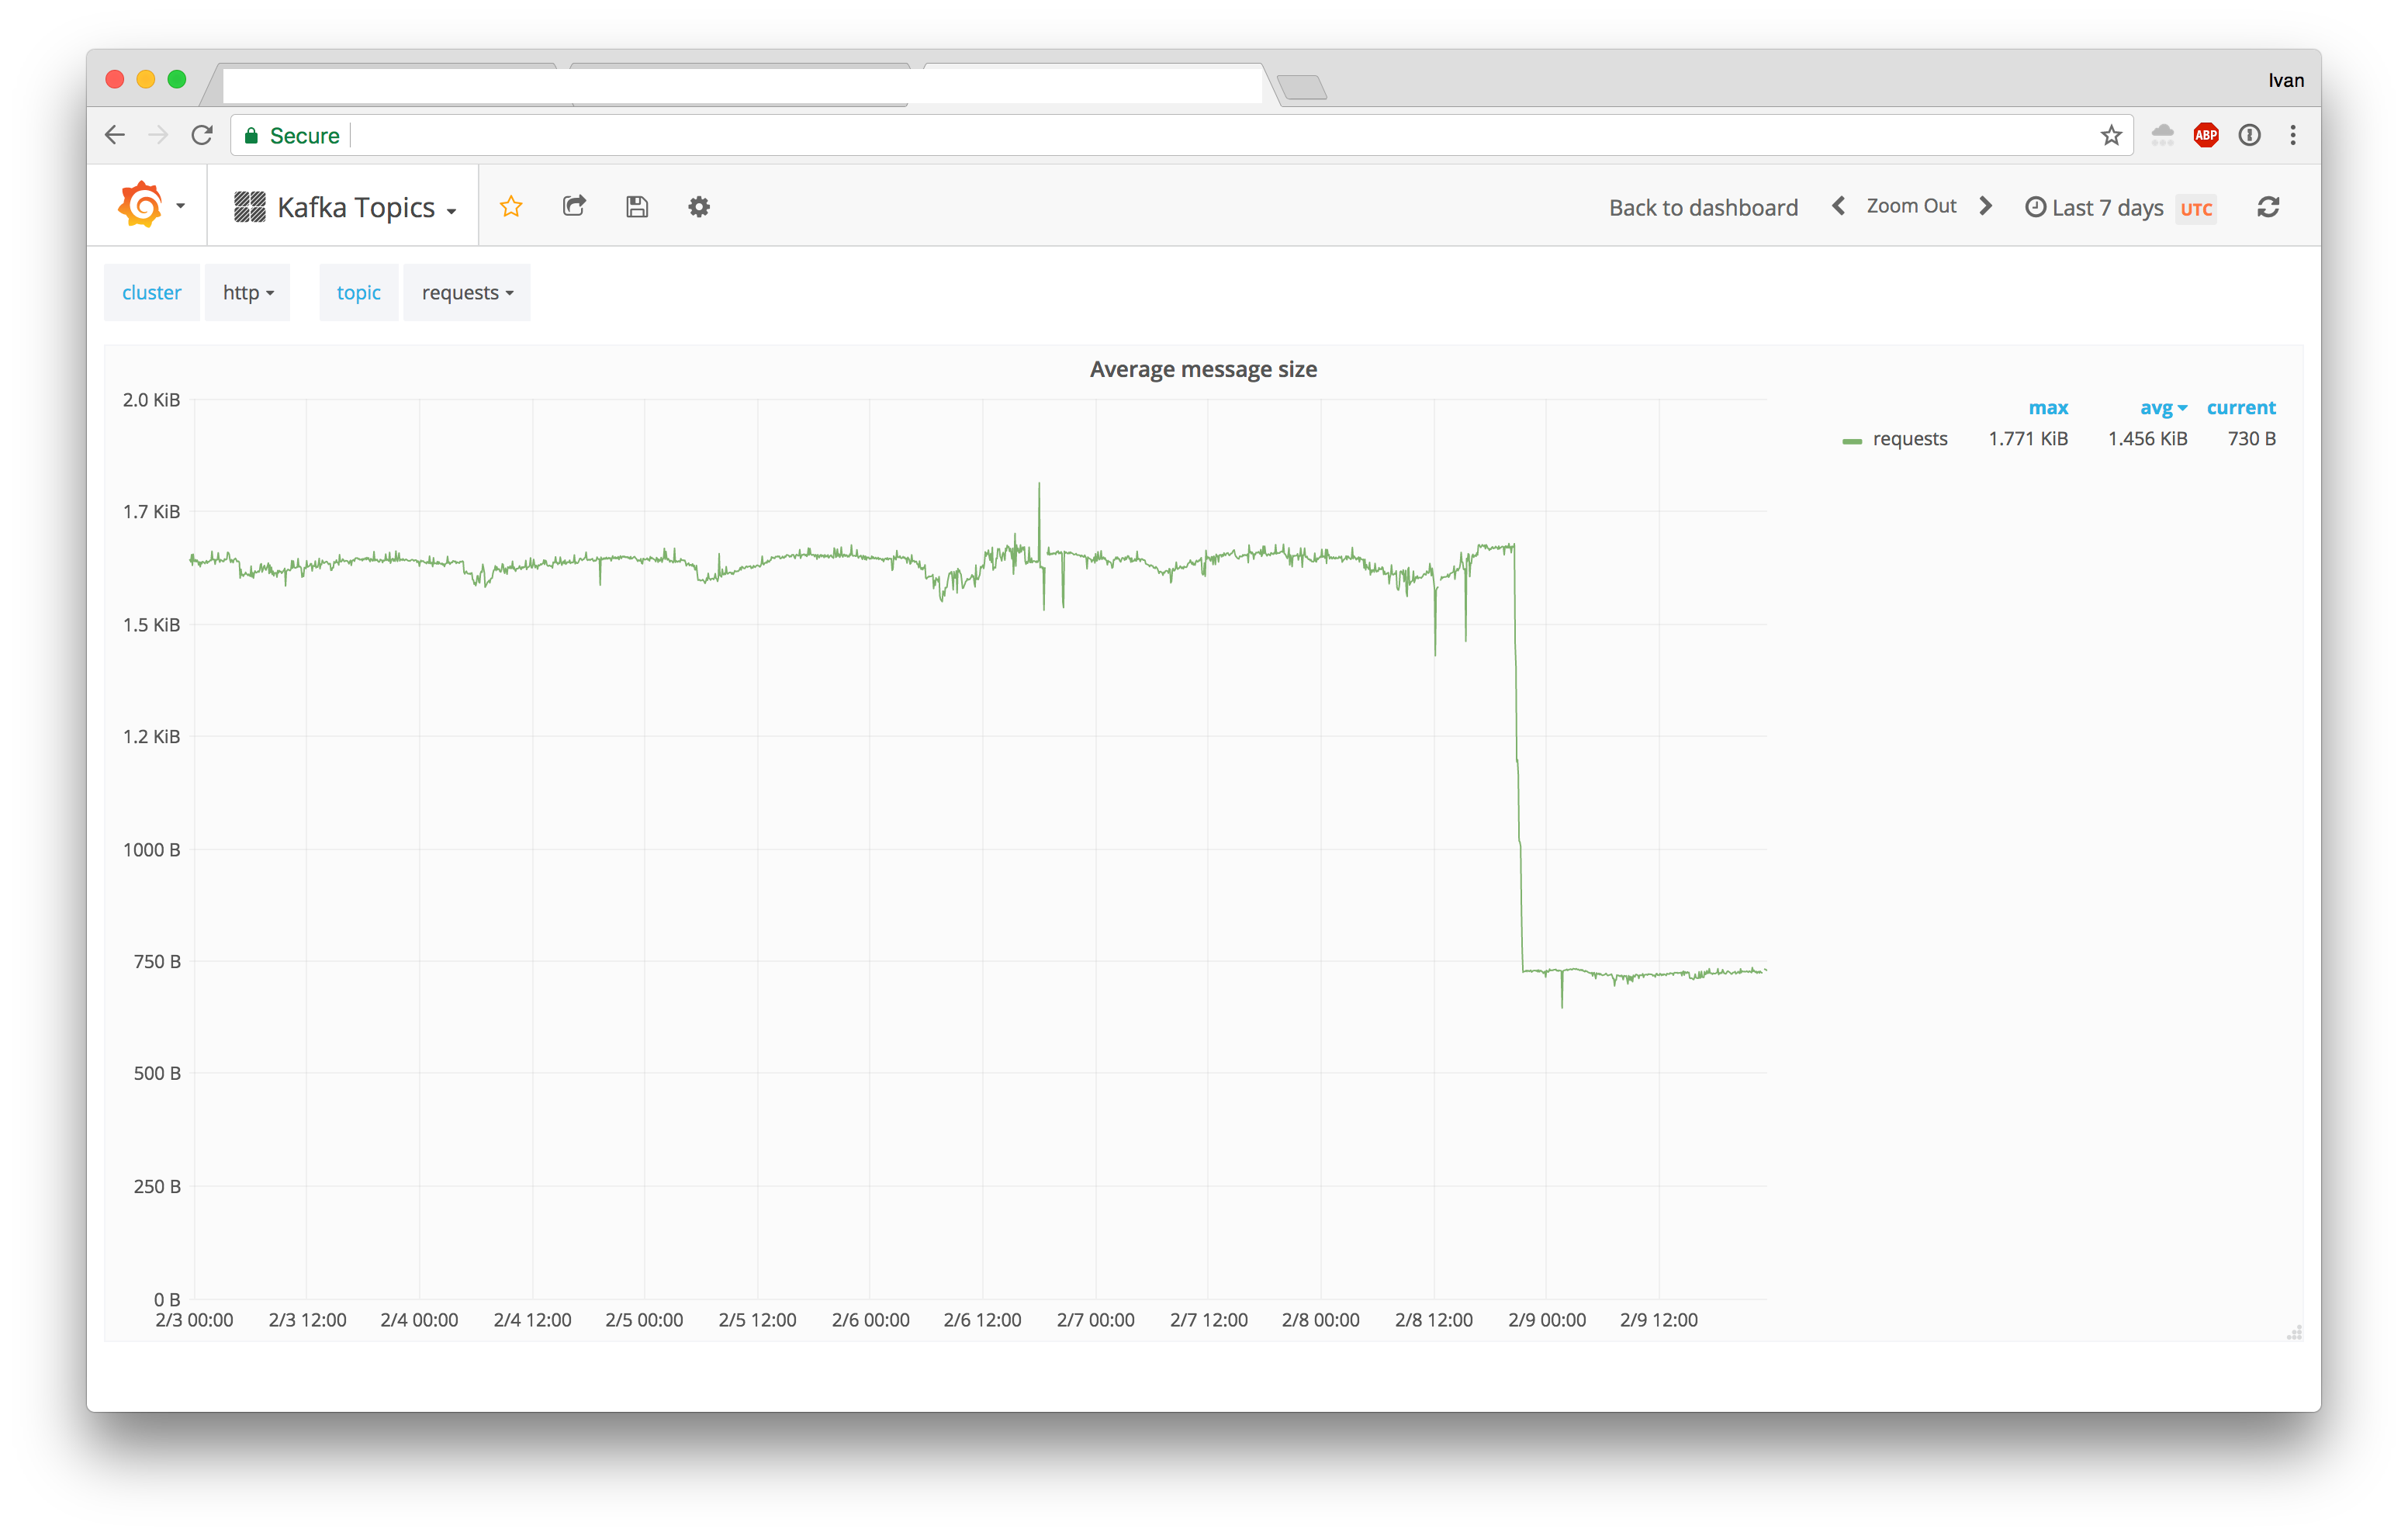 Squeezing the firehose: getting the most from Kafka compression